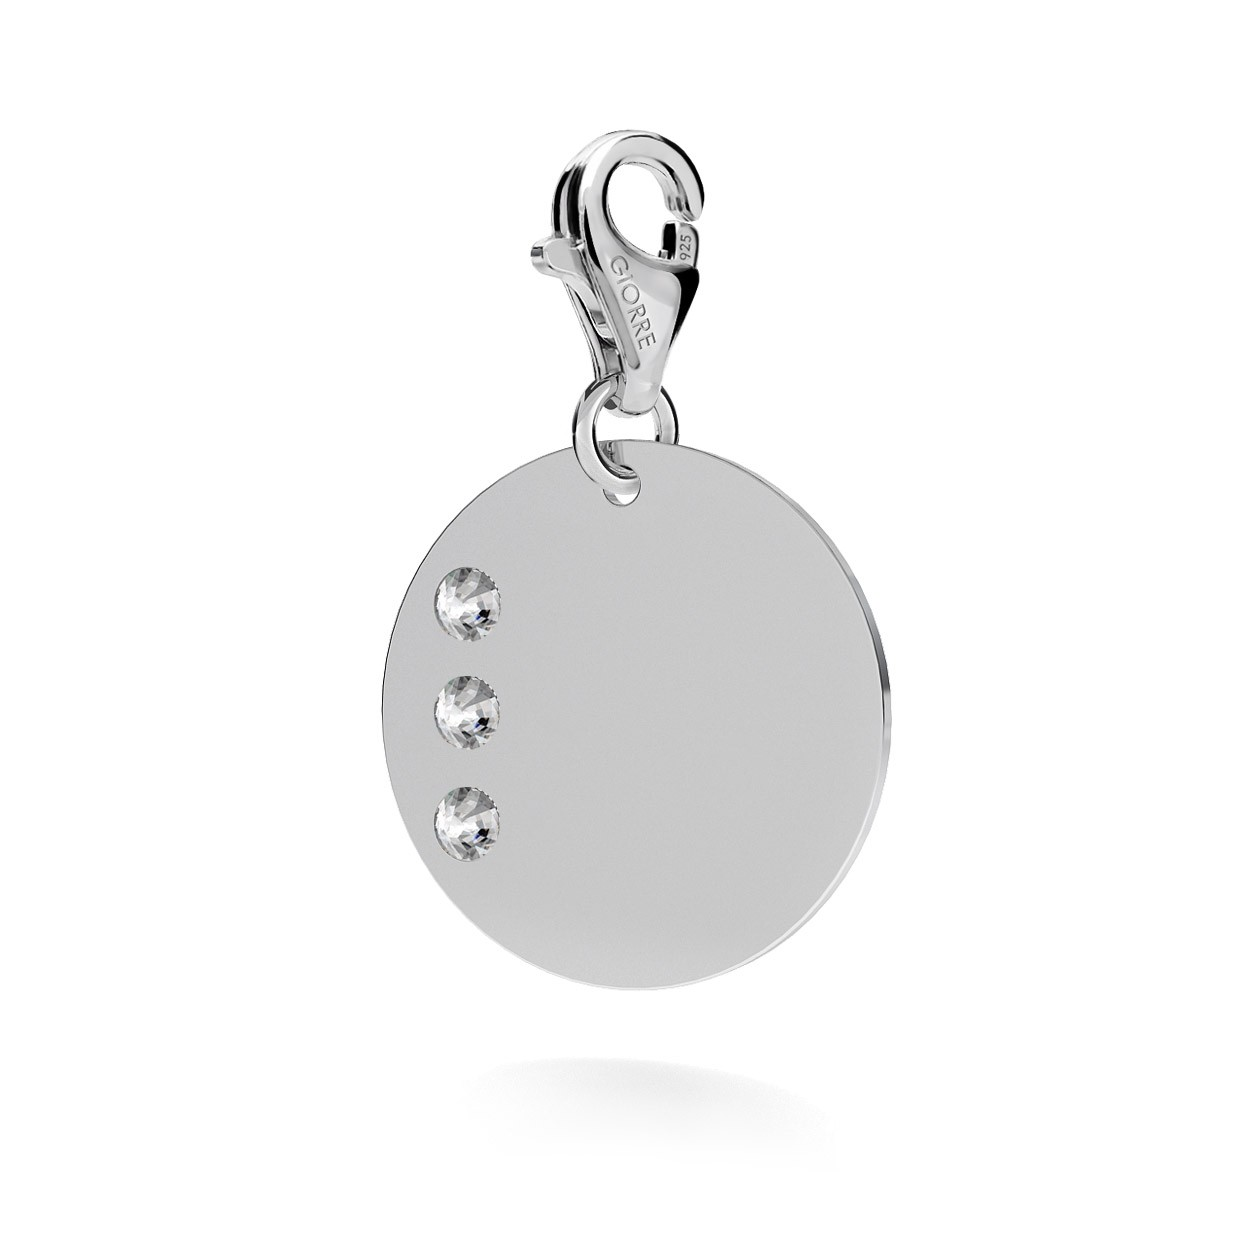 CHARM 131, ROUND DISC NAME WITH ENGRAVE, SWAROVSKI 2038 SS 6, STERLING SILVER (925) RHODIUM OR GOLD PLATE